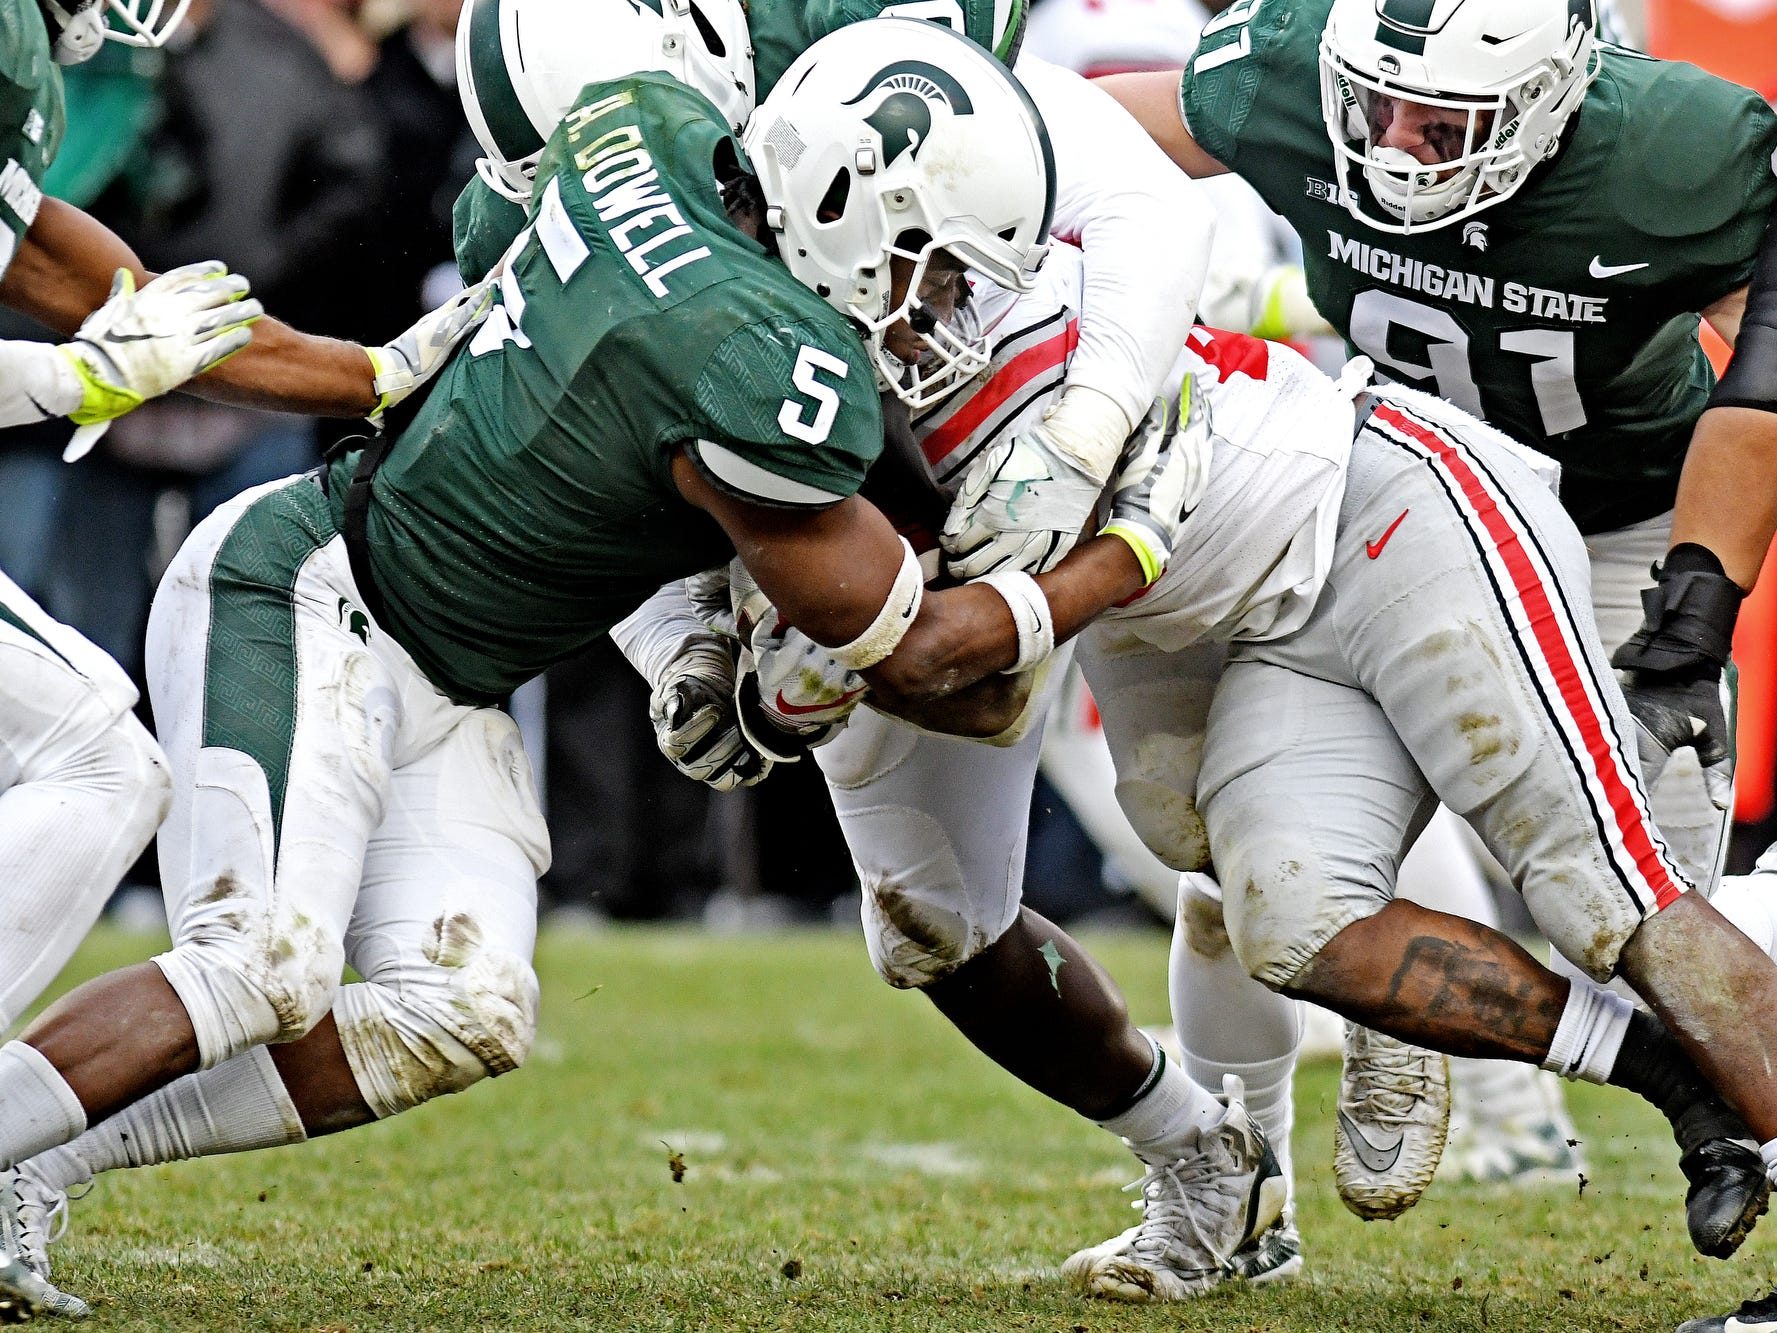 Michigan State's Andrew Dowell, left, tackles Ohio State's Mike Weber Jr. during the fourth quarter on Saturday, Nov. 10, 2018, in East Lansing.